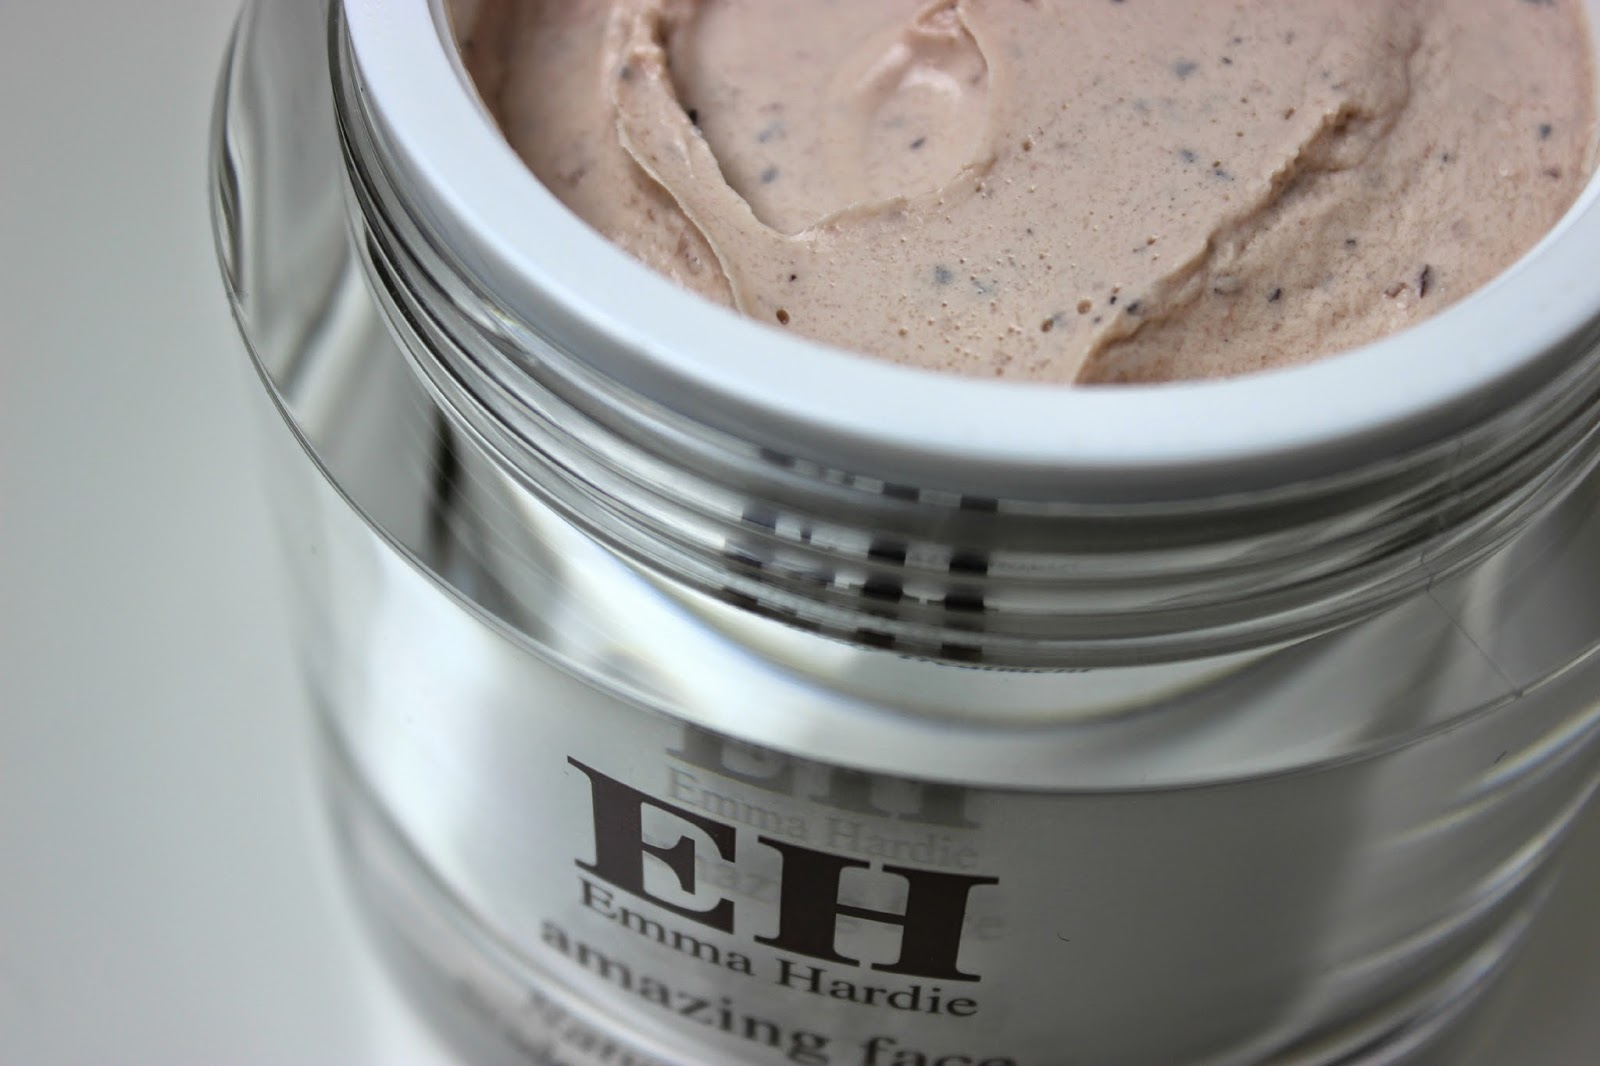 Emma Hardie Natural Lift and Sculpt Body Treatment Scrub